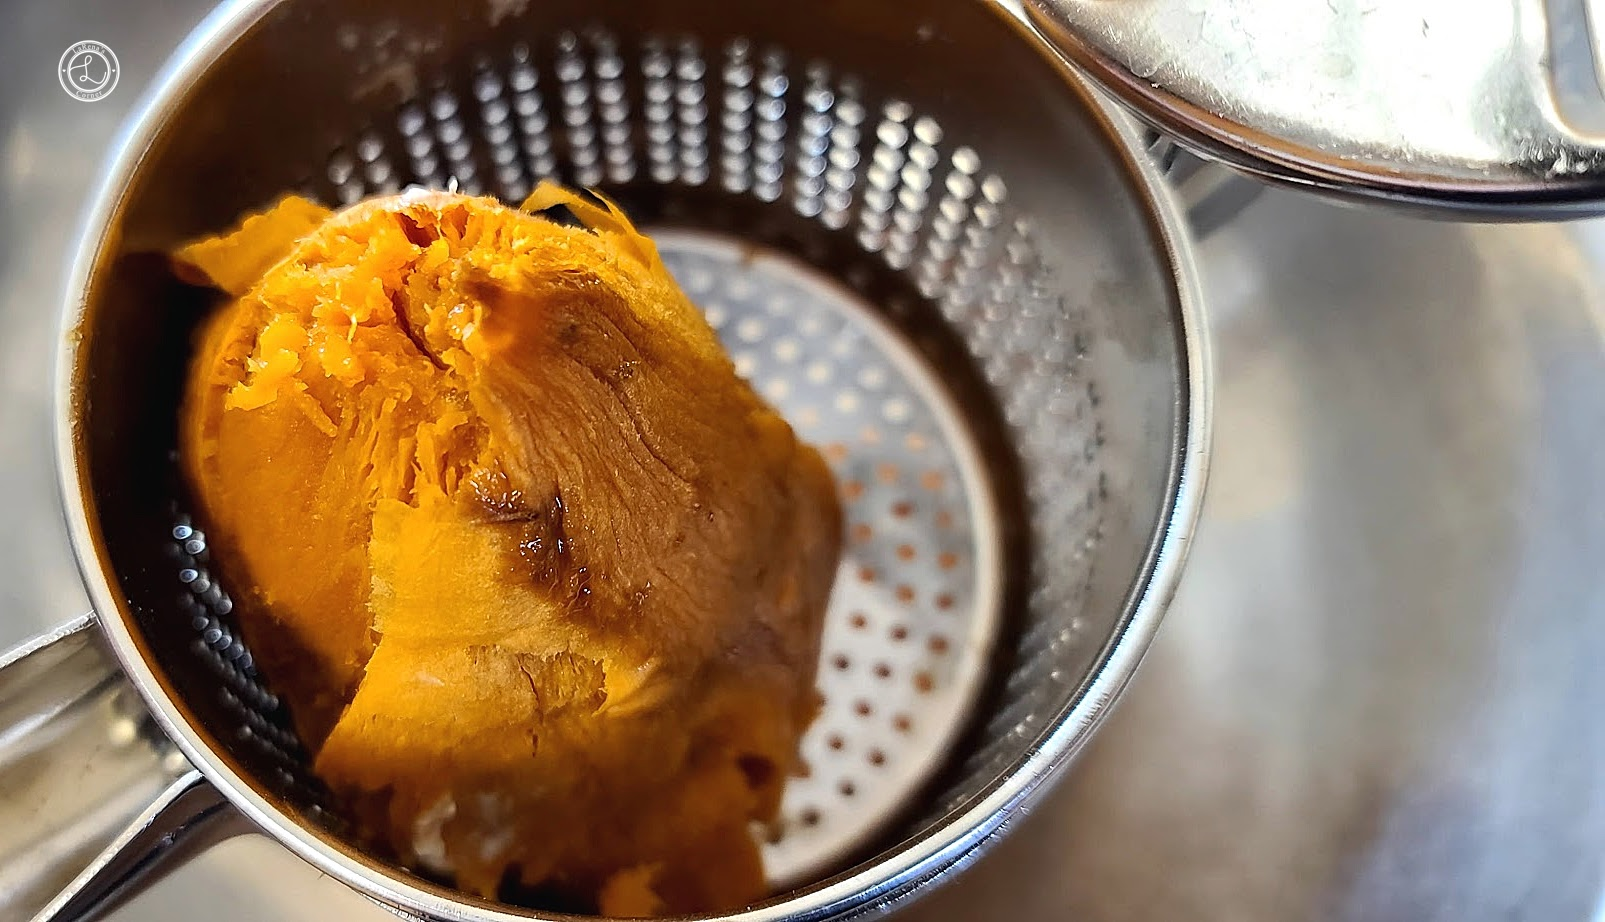 Putting the sweet potato through a ricer